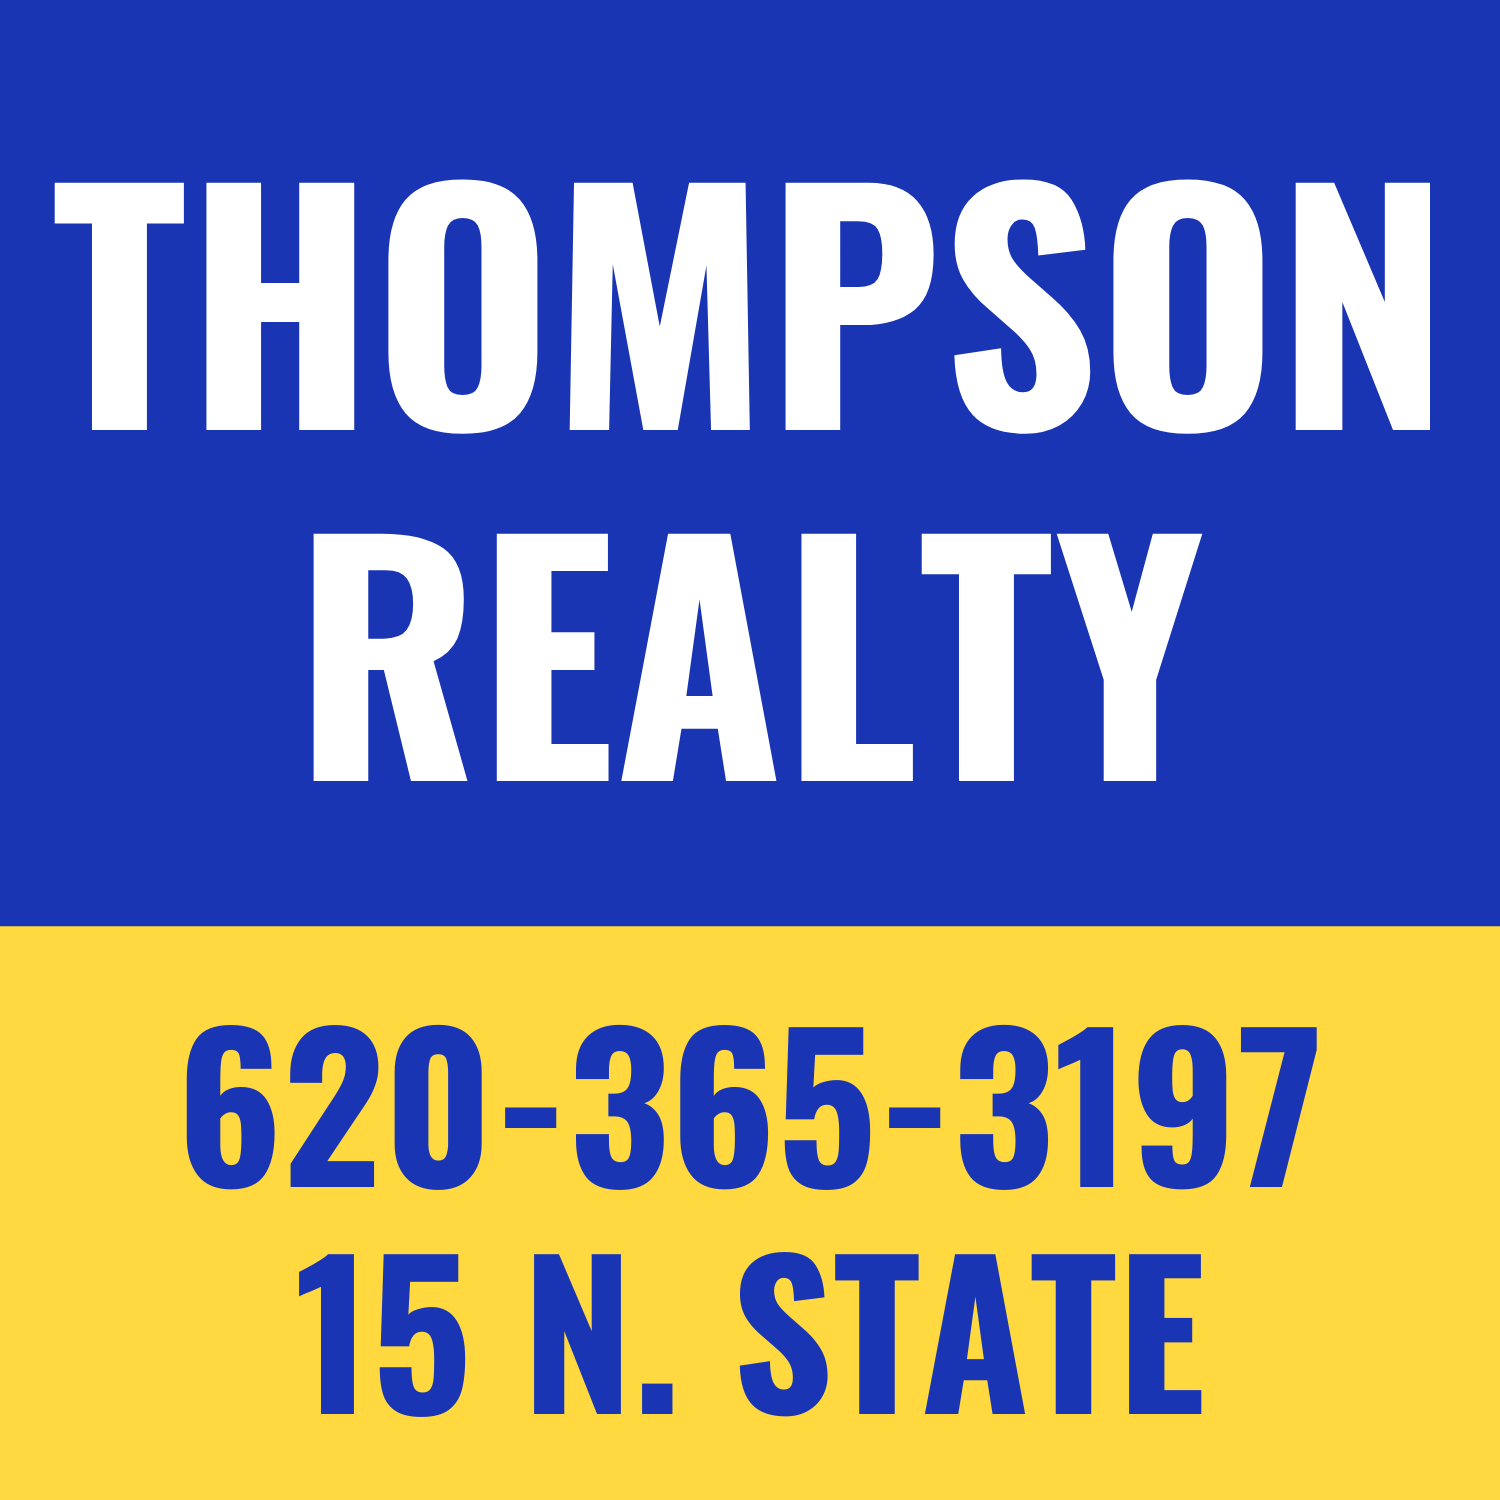 Thompson Realty